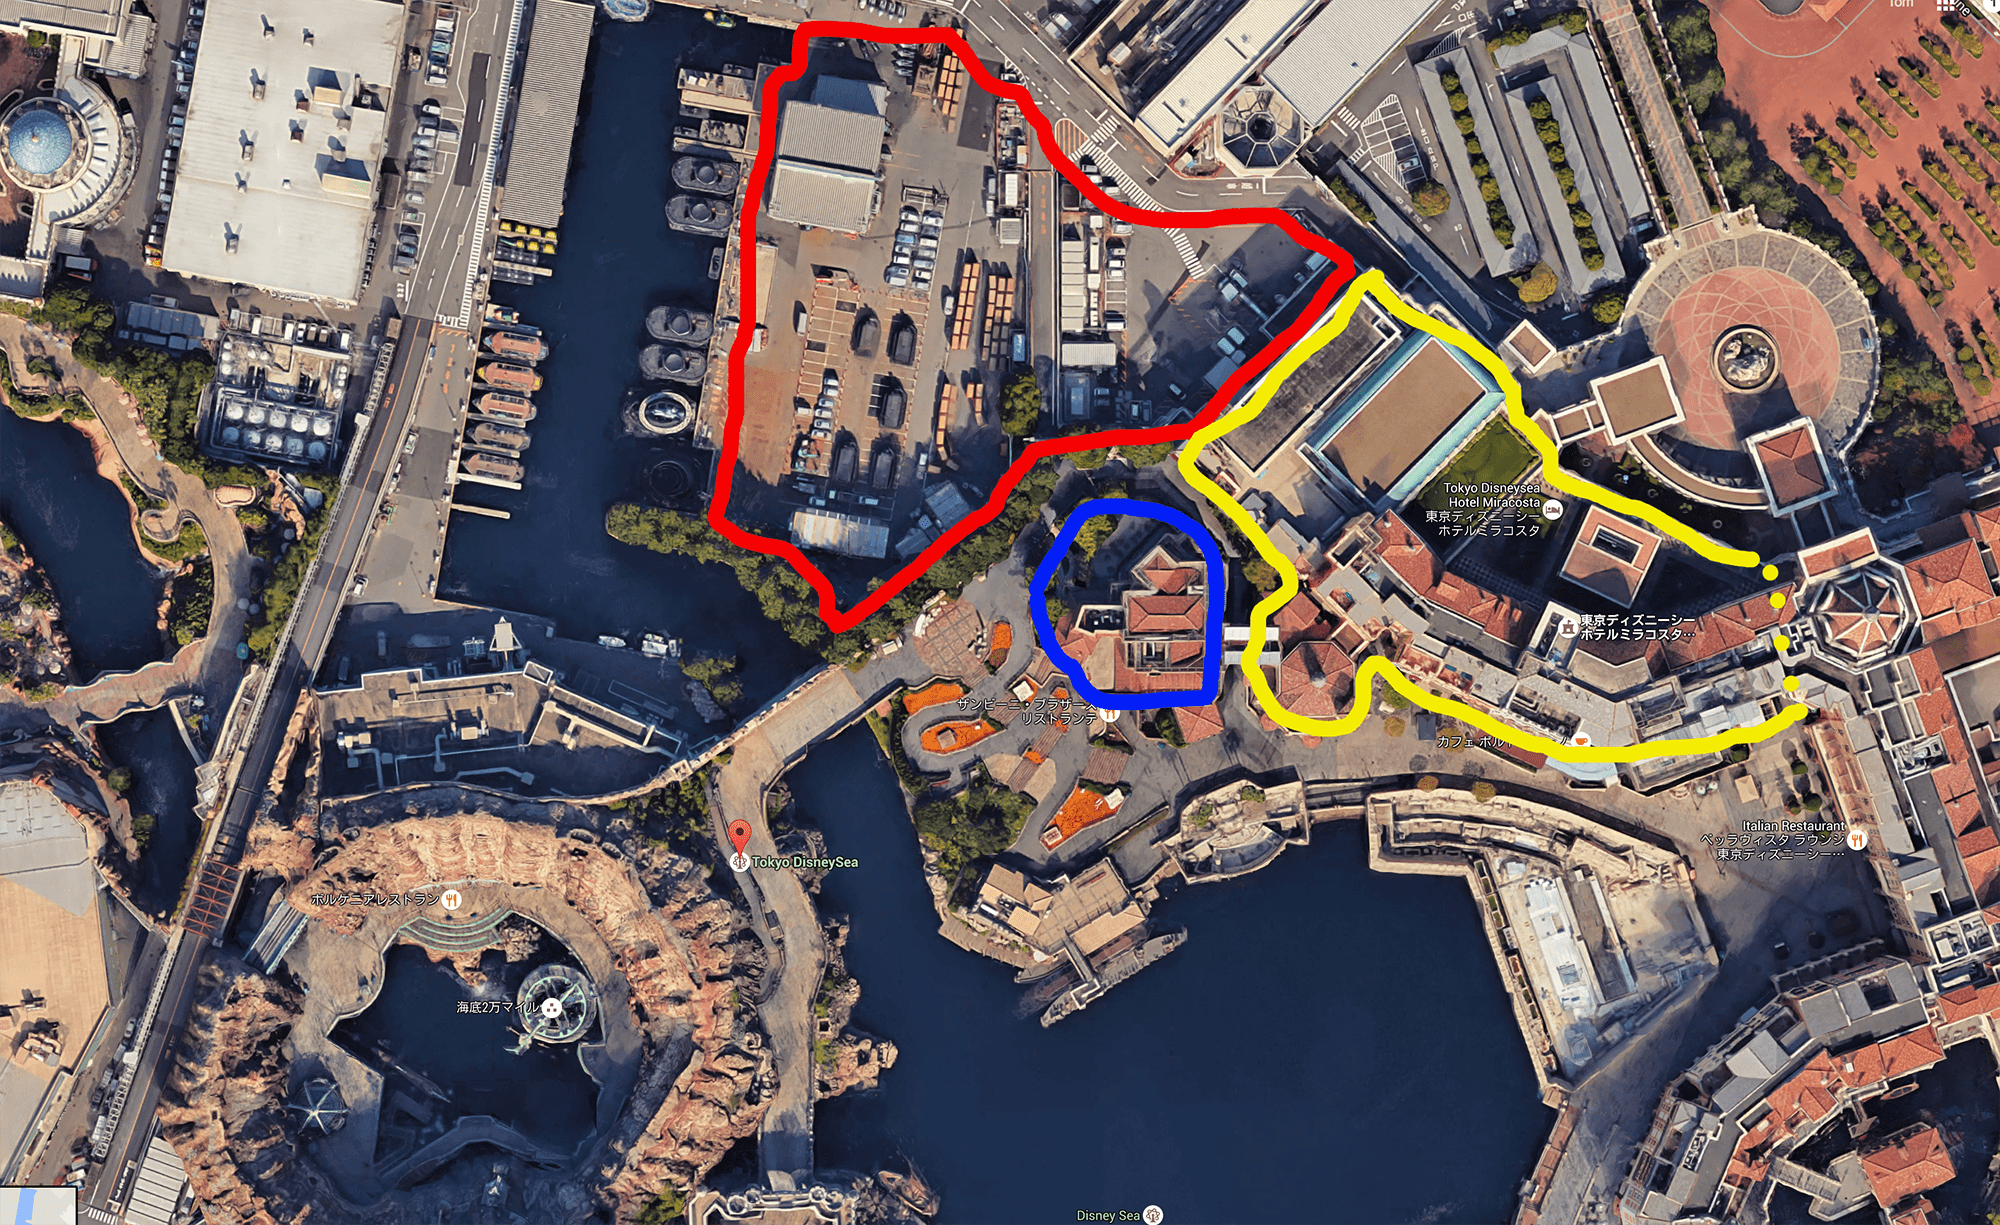 News revised tokyo disneyland disneysea expansion plans the expansion plot isnt the little courtyard behind zambini bros the plot is backstage facilities take a look at this crude overlay i drew on google sciox Image collections